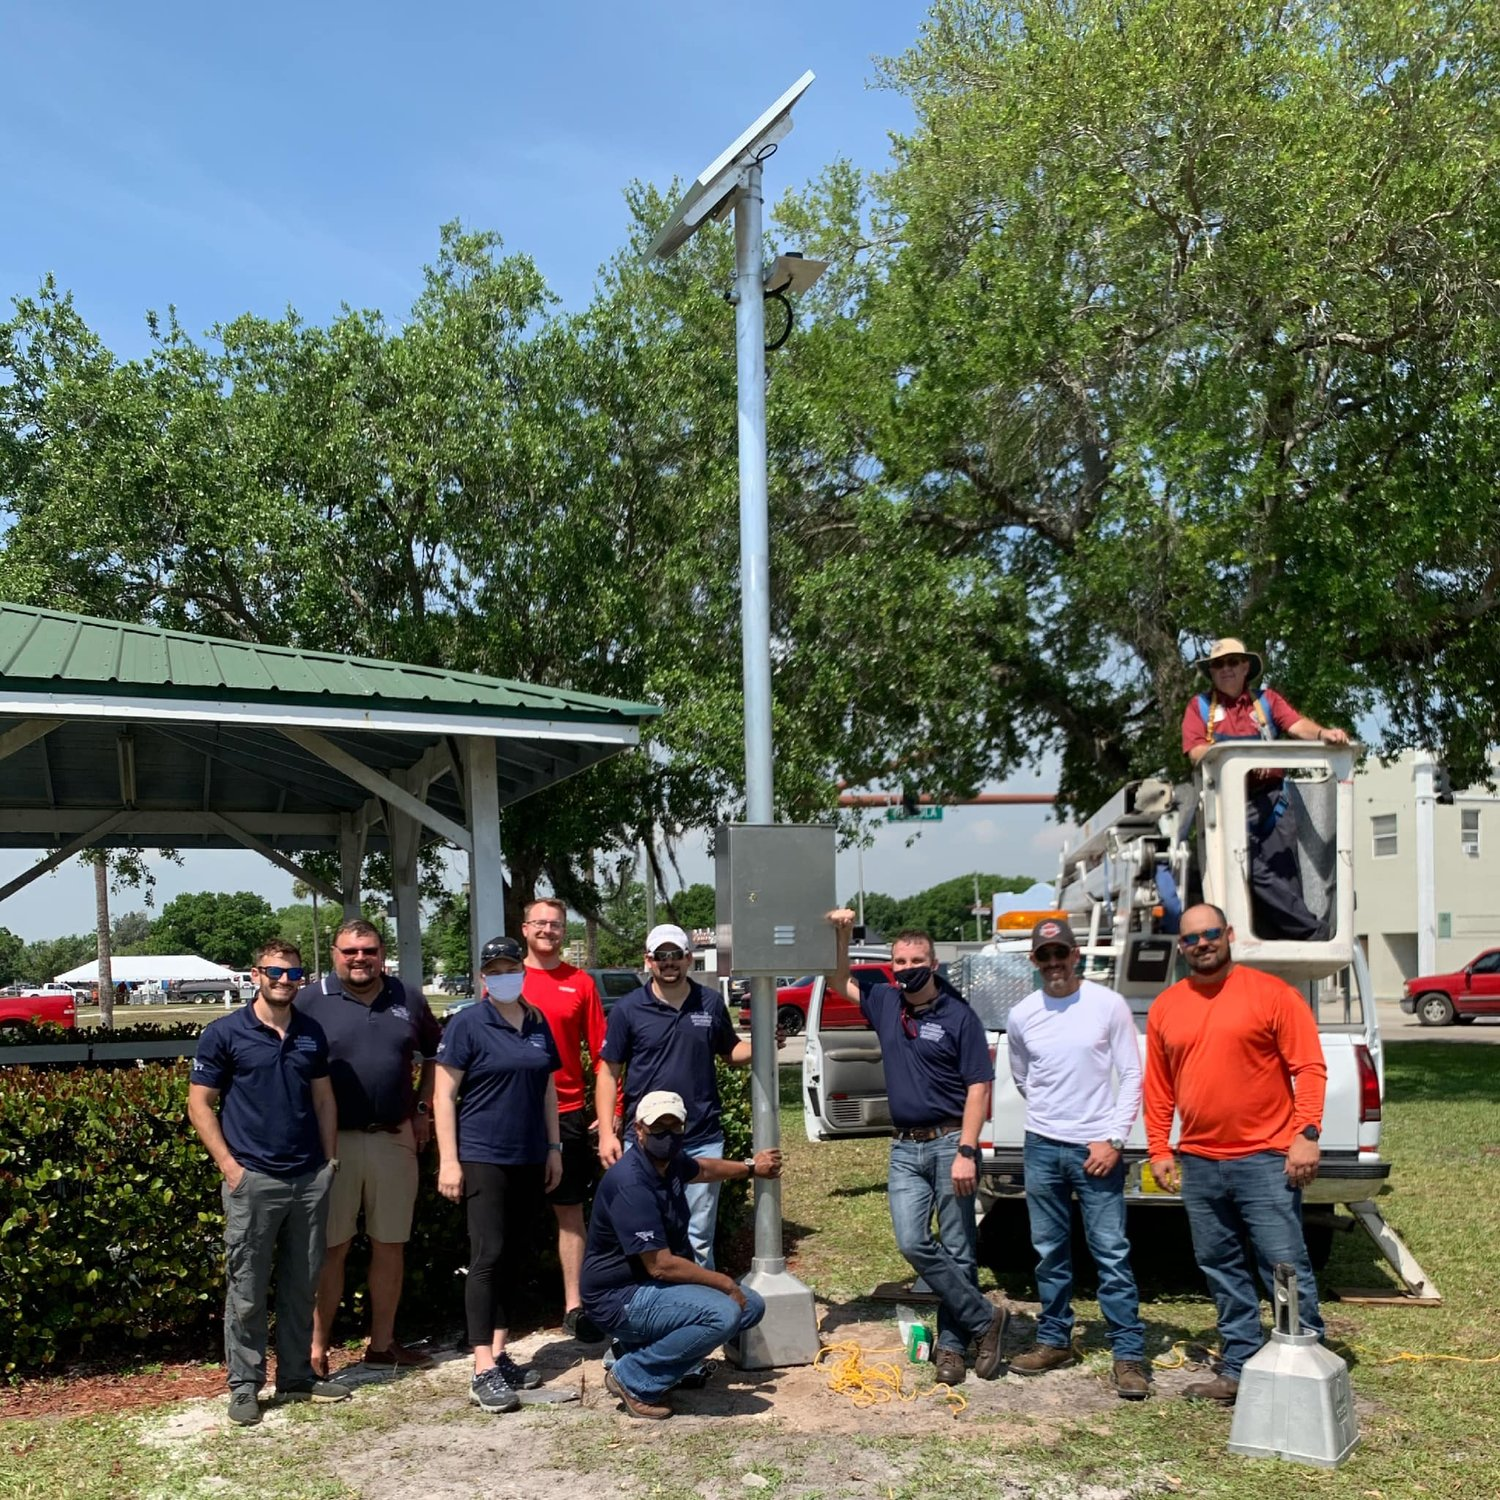 The city of Okeechobee and the Florida Engineering Leadership Institute class of 2020/21 install hotspot towers in city parks.